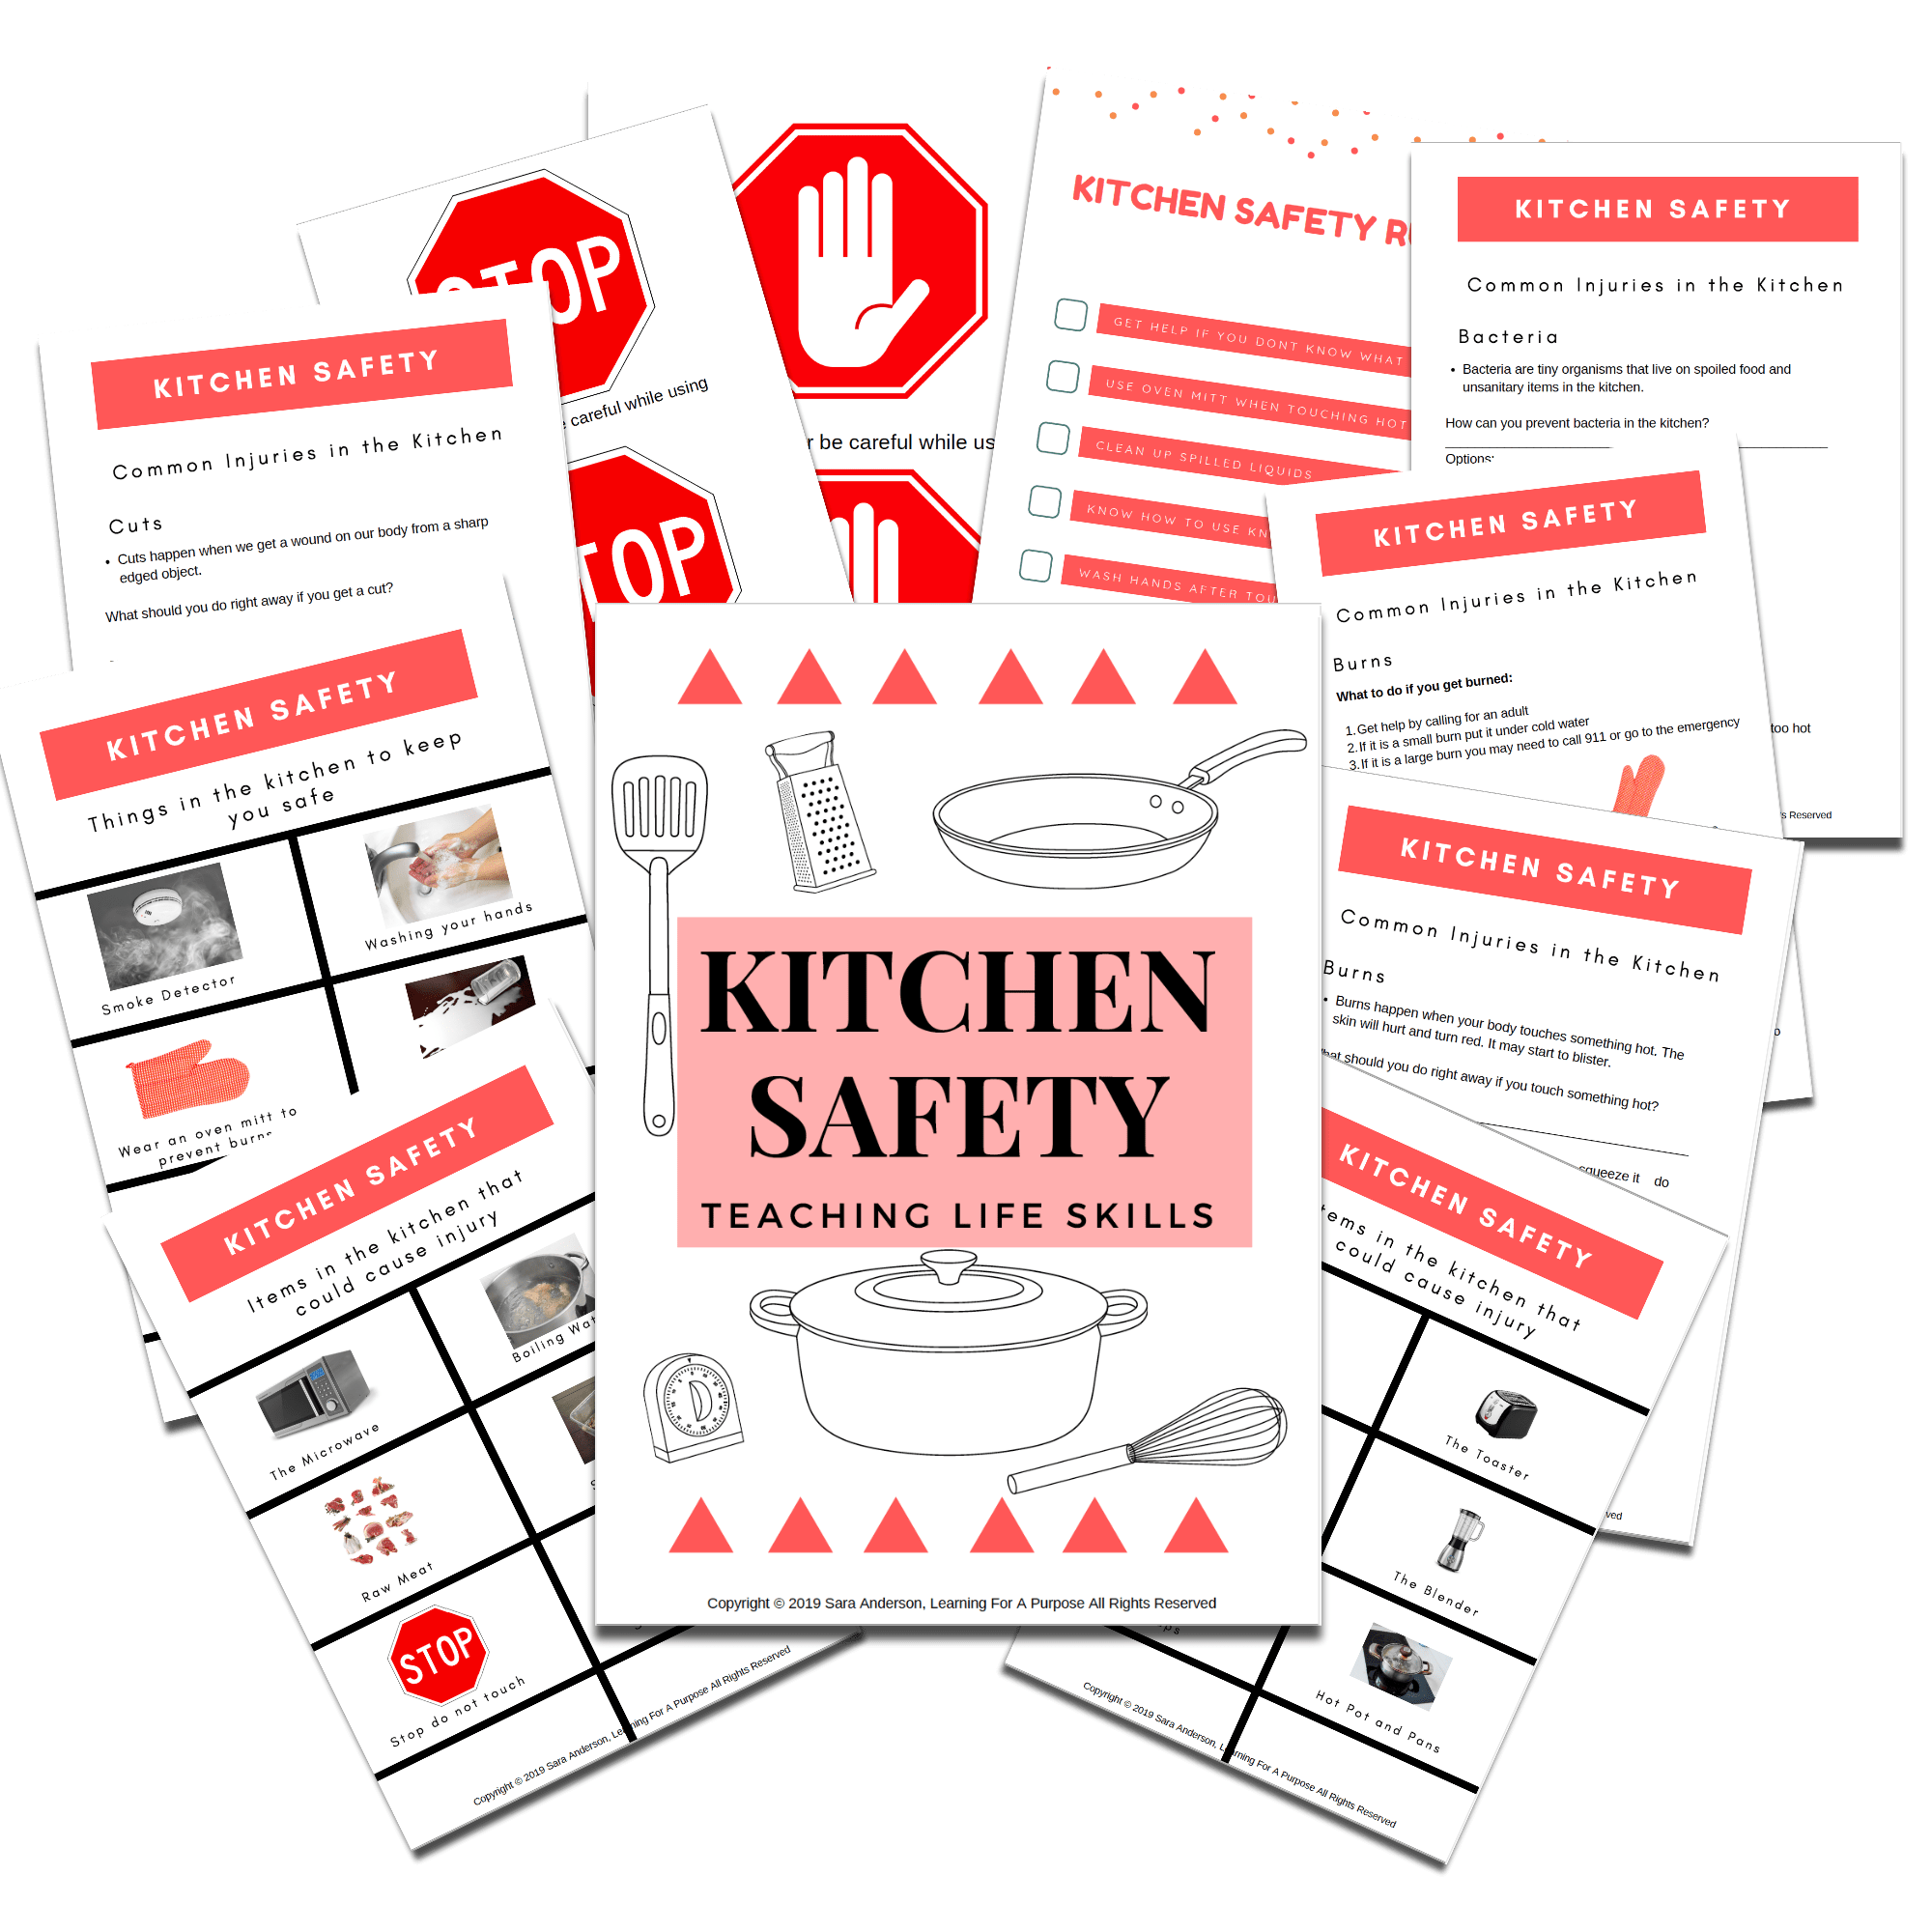 How To Teach Kitchen Safety Skills For Teens With Autism